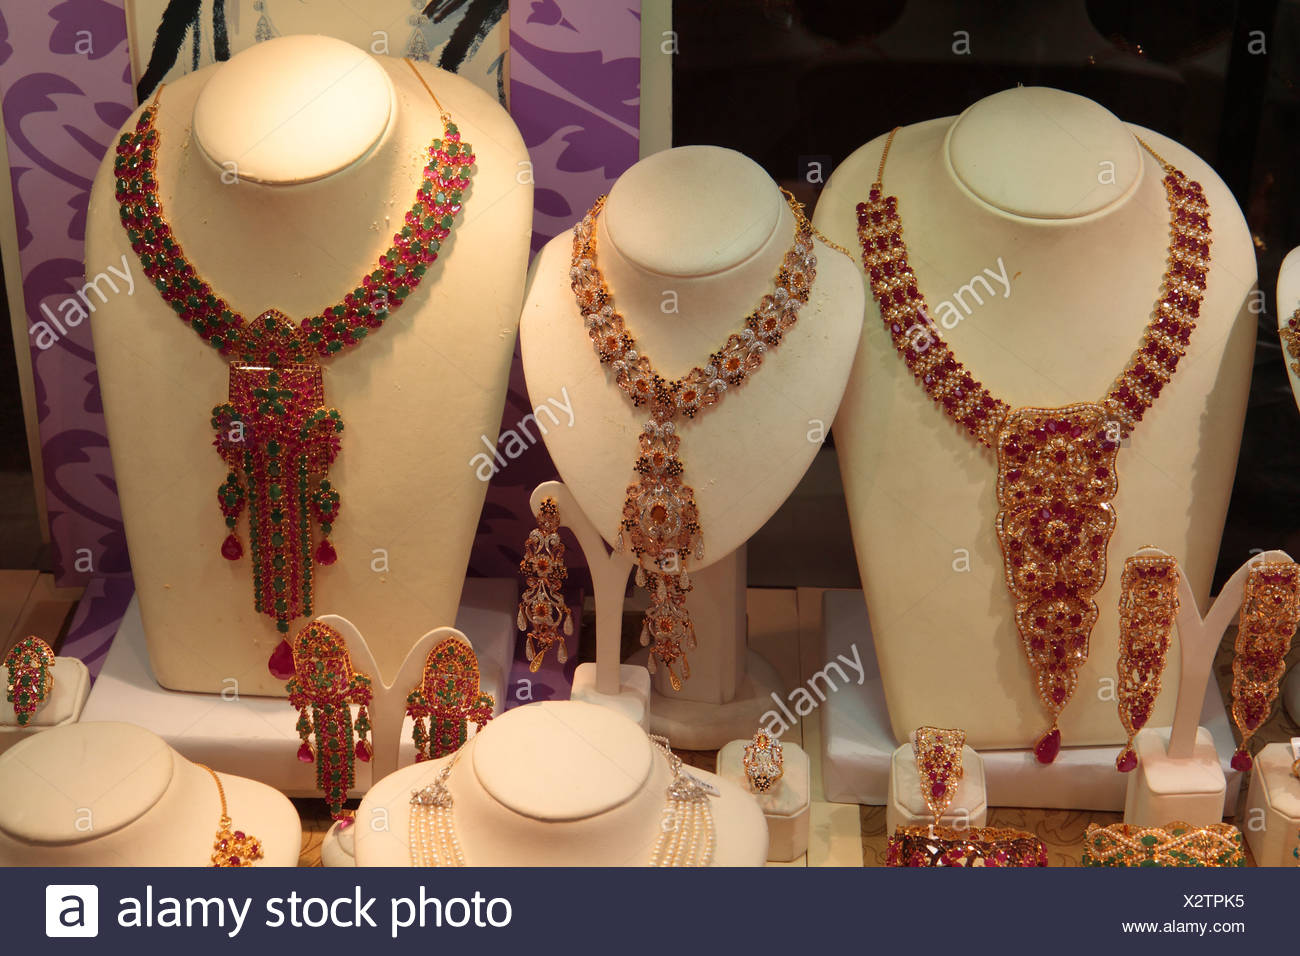 Necklaces with rubies and emeralds, gold market, Dubai, United Arab Emirates, Middle East - Stock Image